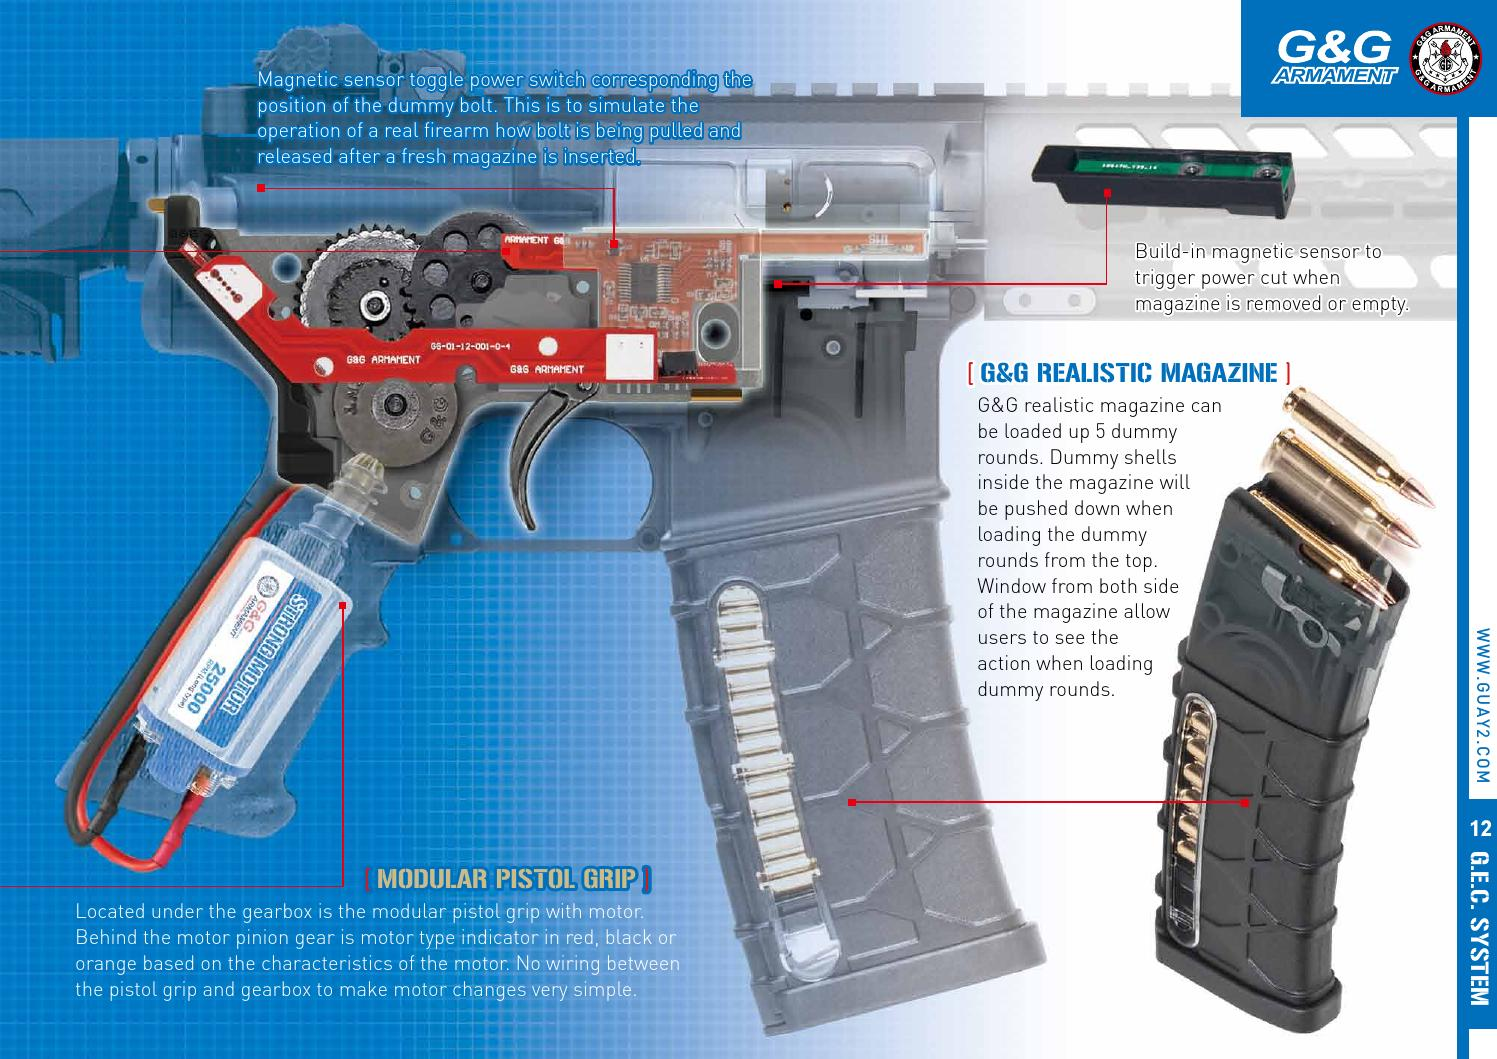 Gg 2015 Catalogue By Guay2 Issuu How To Build Magnetic Gun